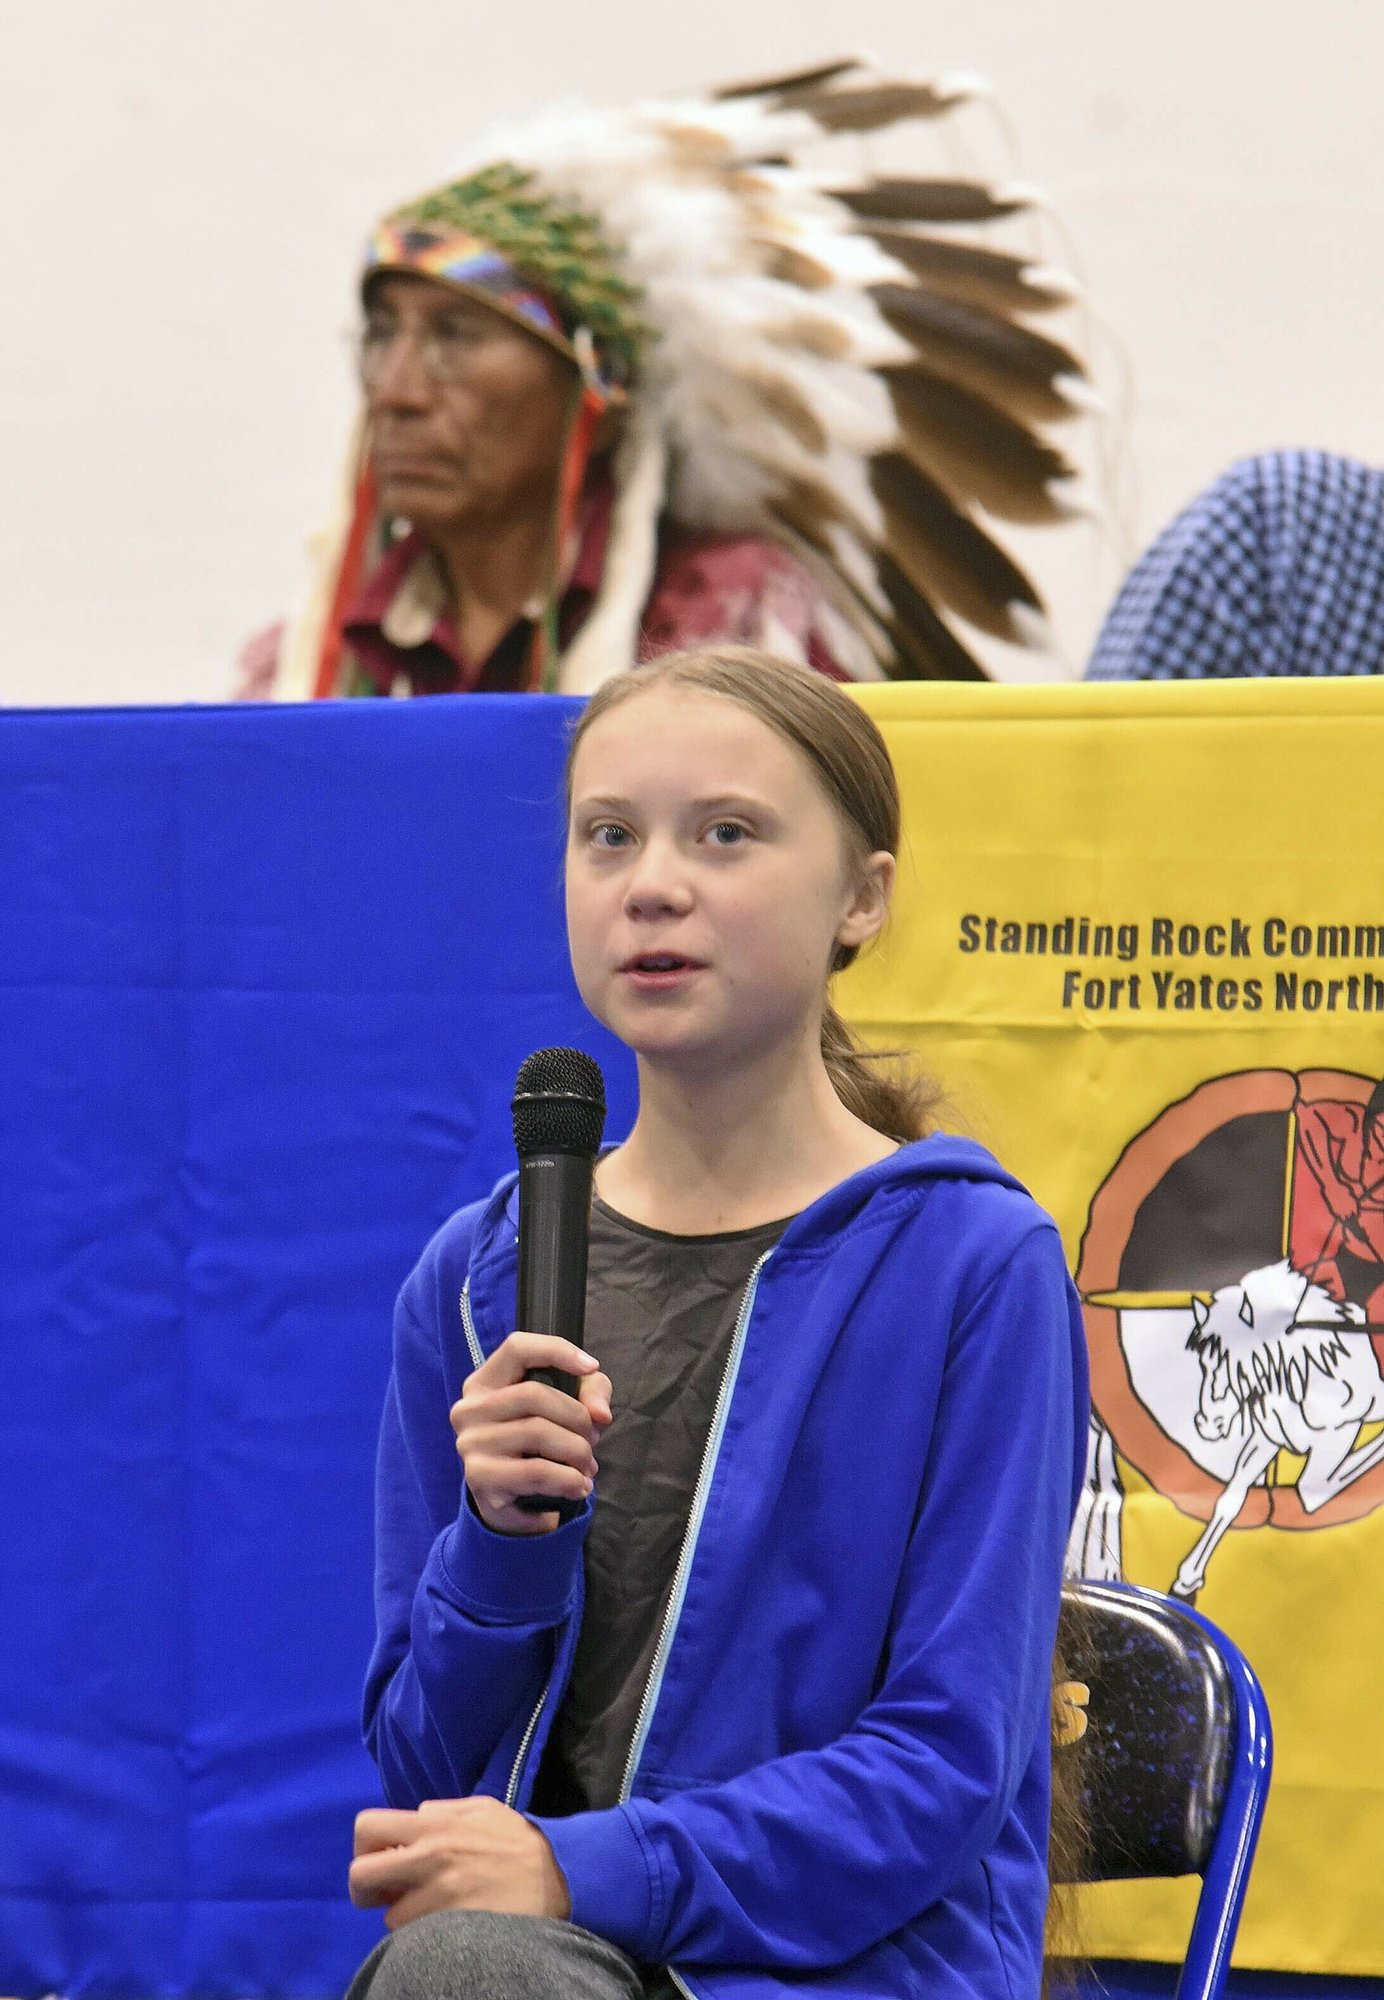 Swedish teen urges youth to demand climate change action